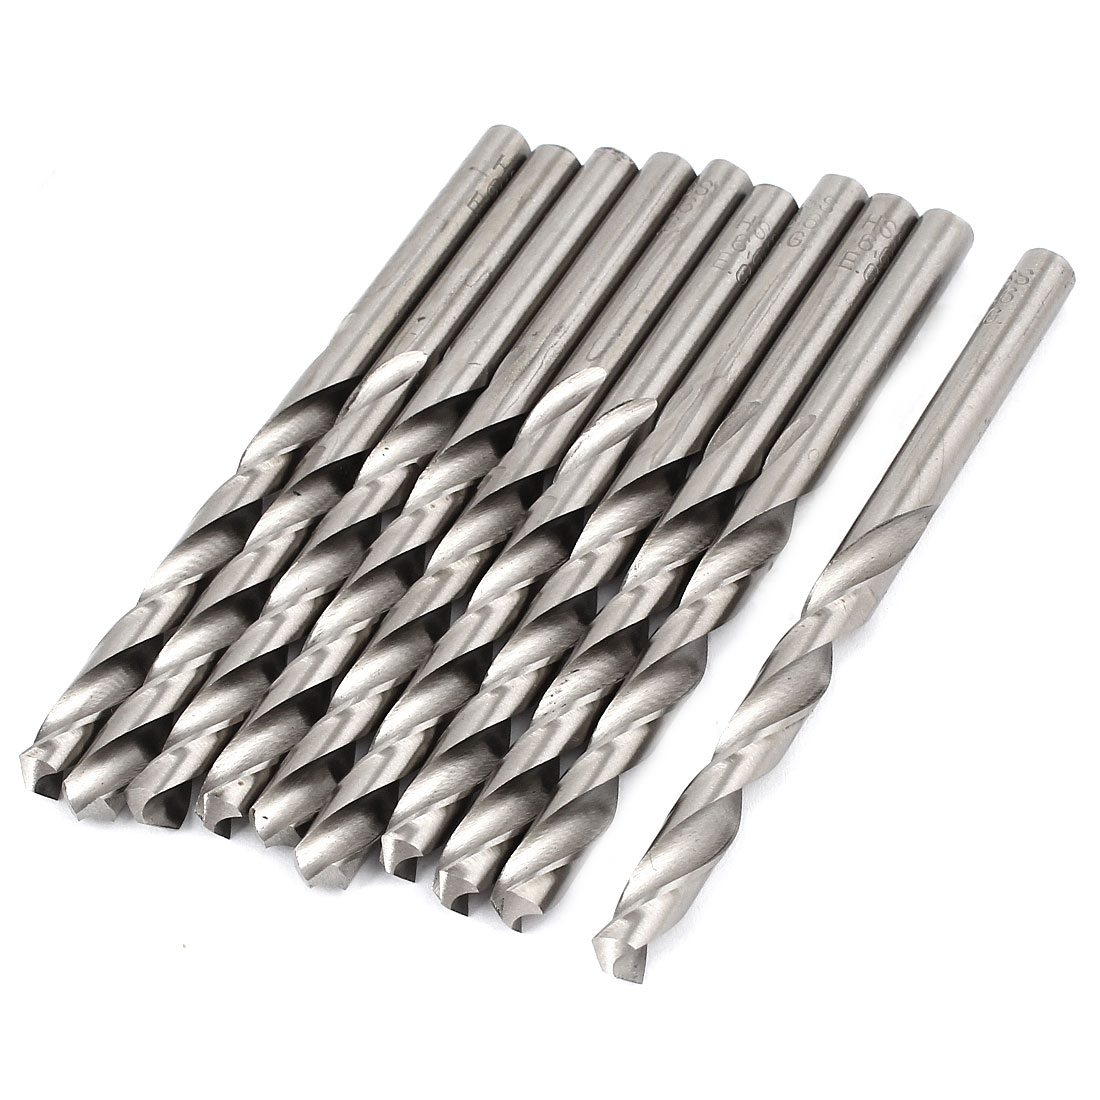 10 Pieces 5.3mm x 60mm Straight Shank HSS Twist Drill Drilling Bits Silver Tone